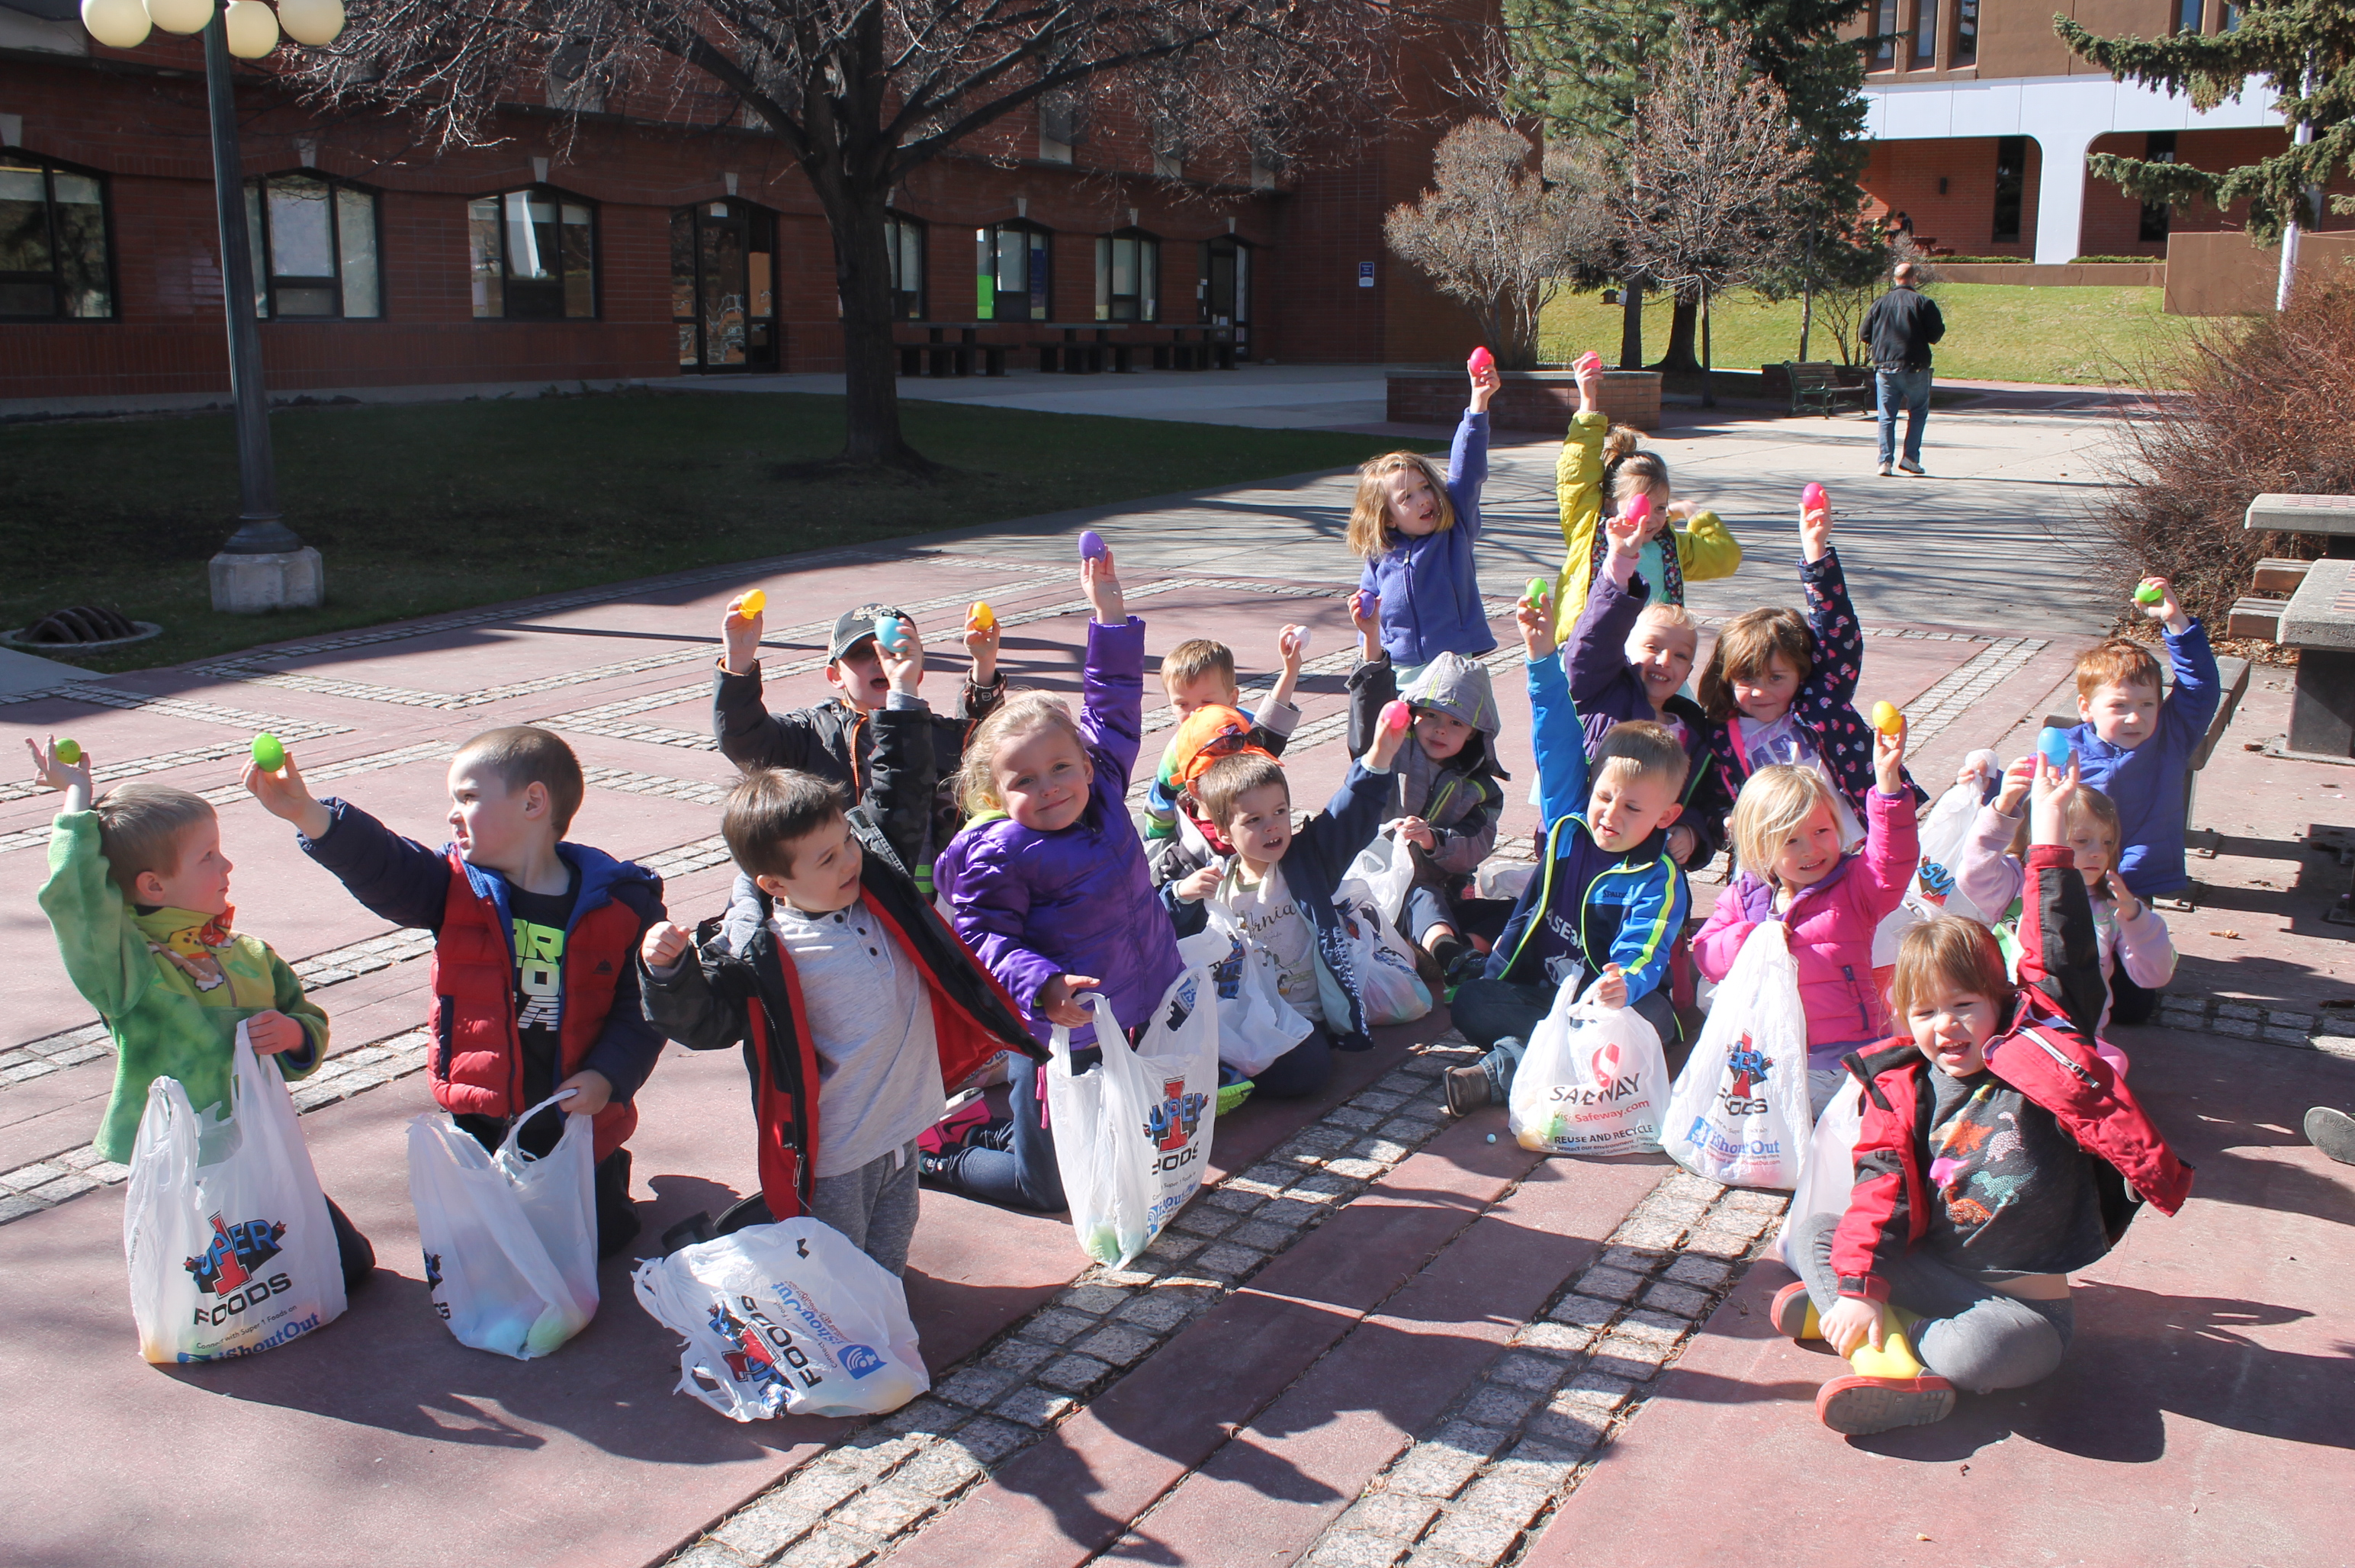 Pictured: RMPC kids holding up their eggs after a lengthy Easter Egg hunt in a local park.